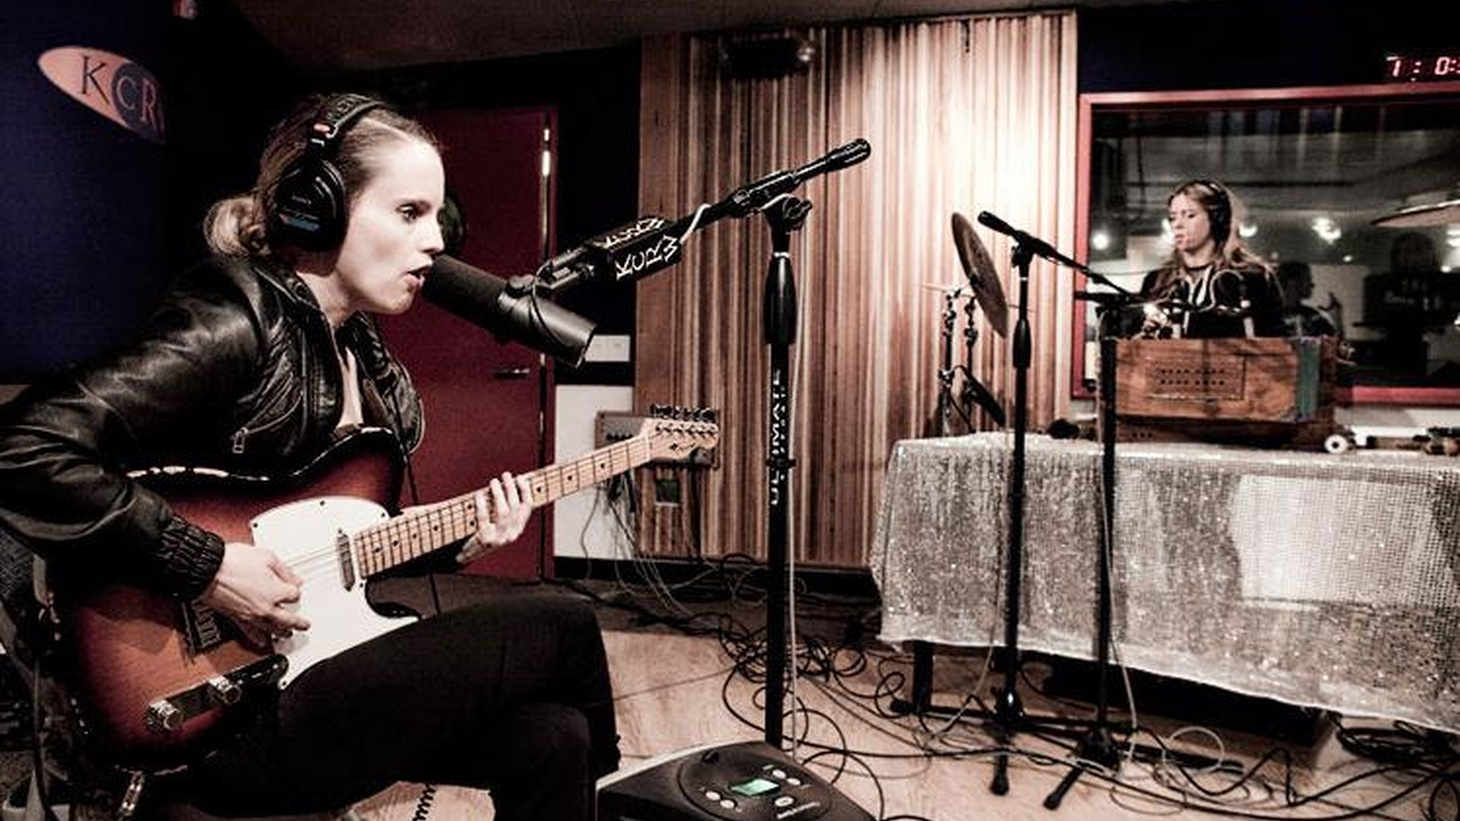 British singer and guitarist Anna Calvi is a captivating performer as we witnessed when she joined Morning Becomes Eclectic for a live session...